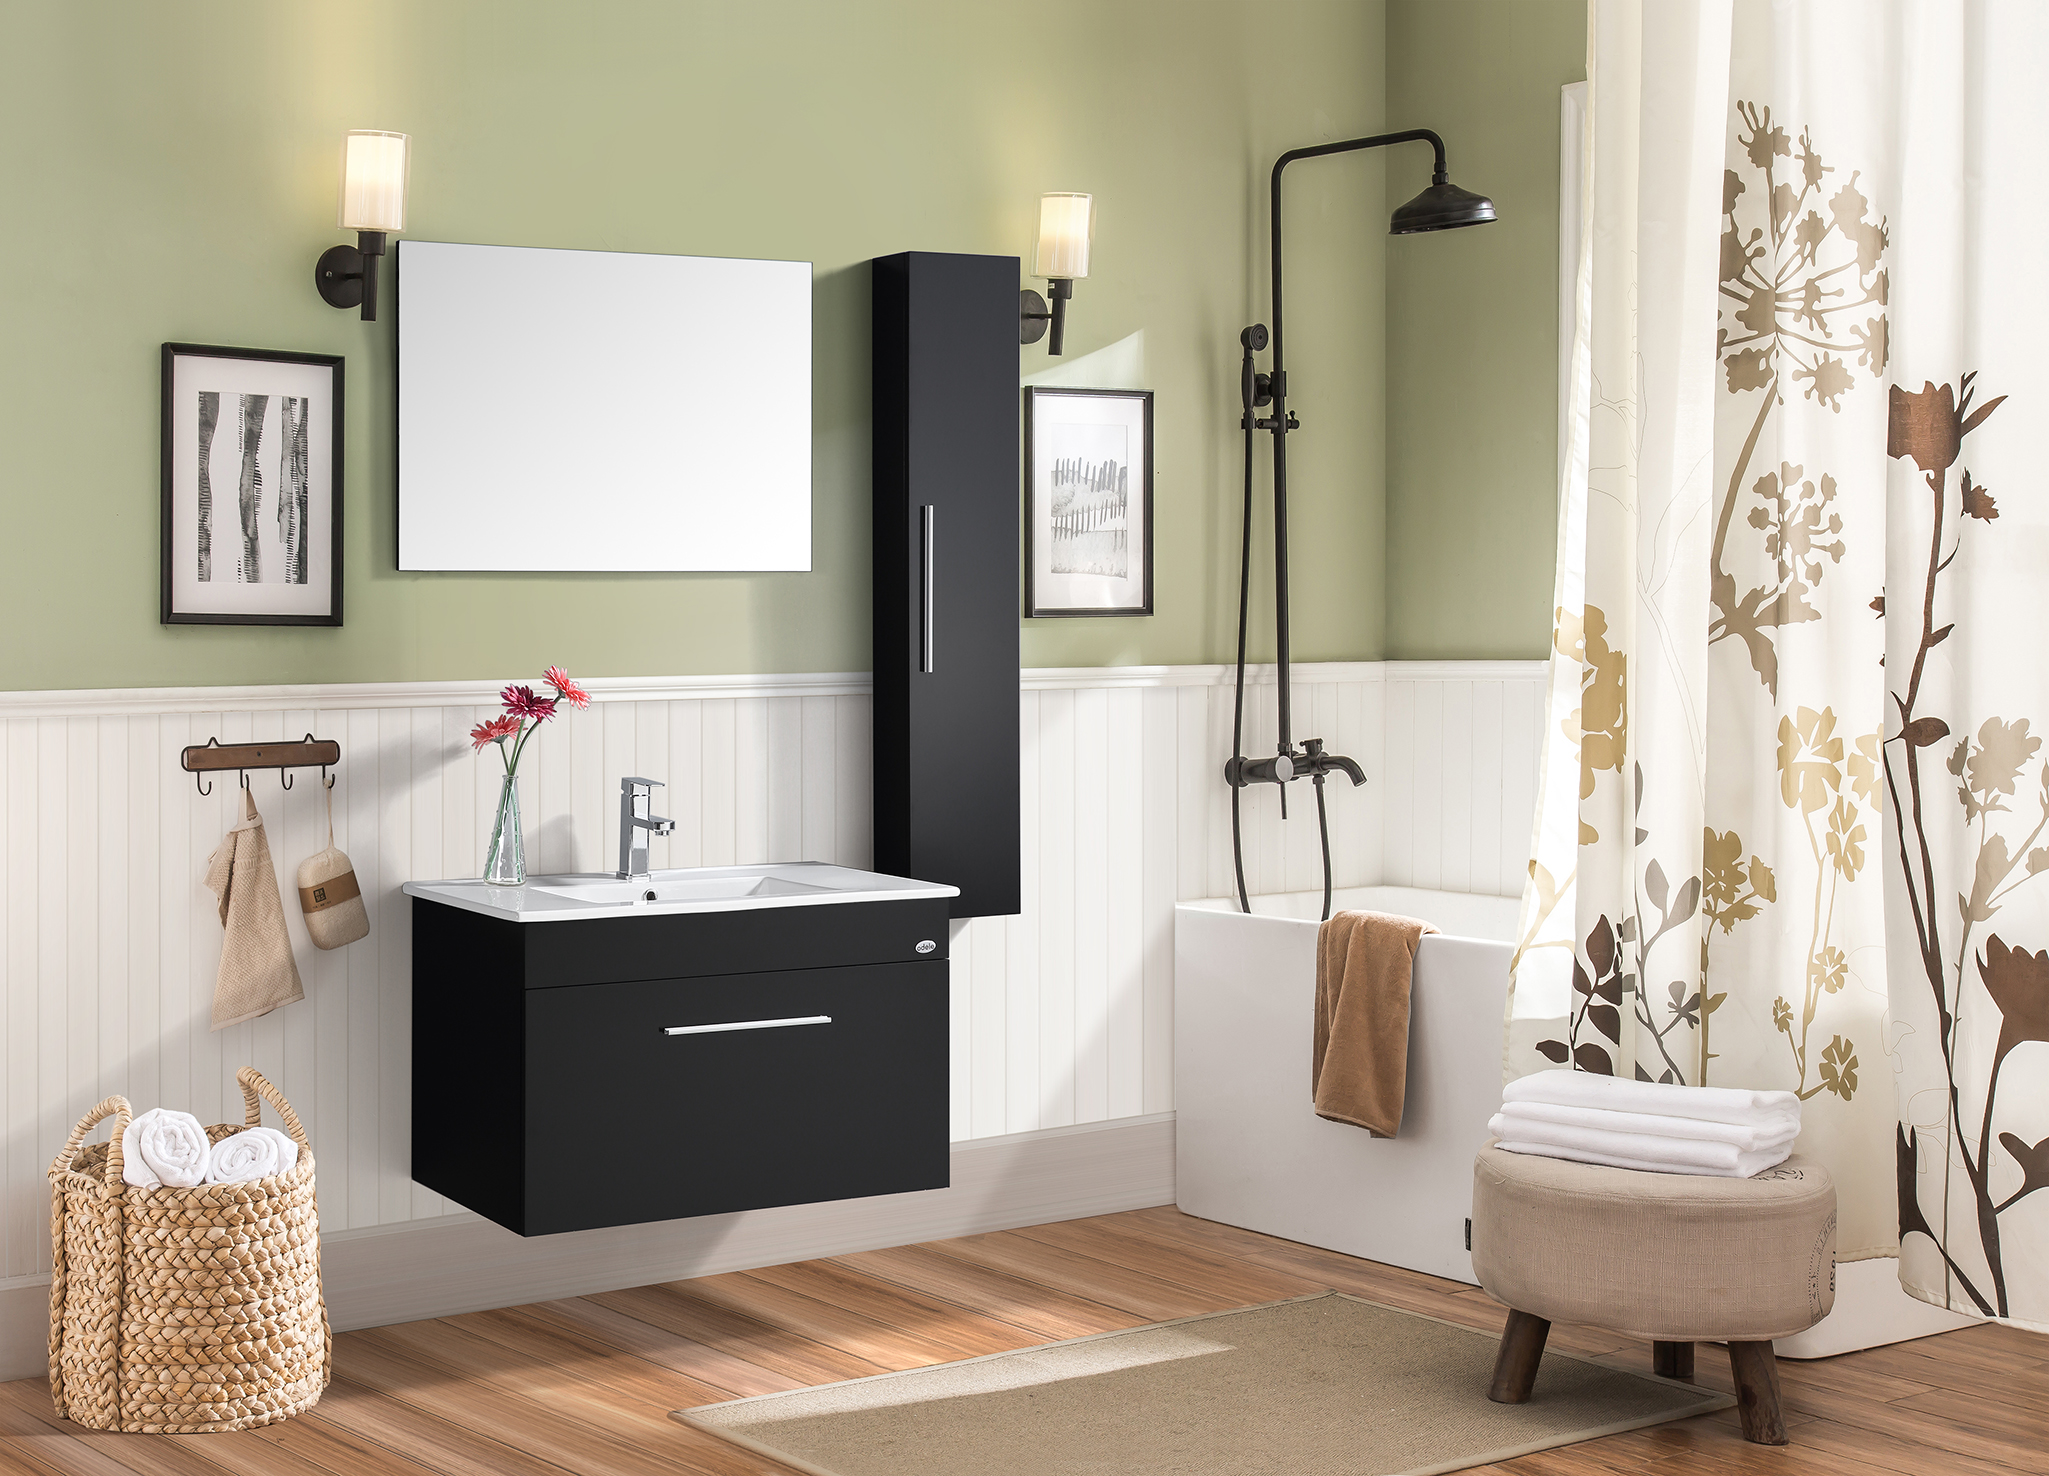 Magnum Bath Vanity in Black Colour by HomeTown